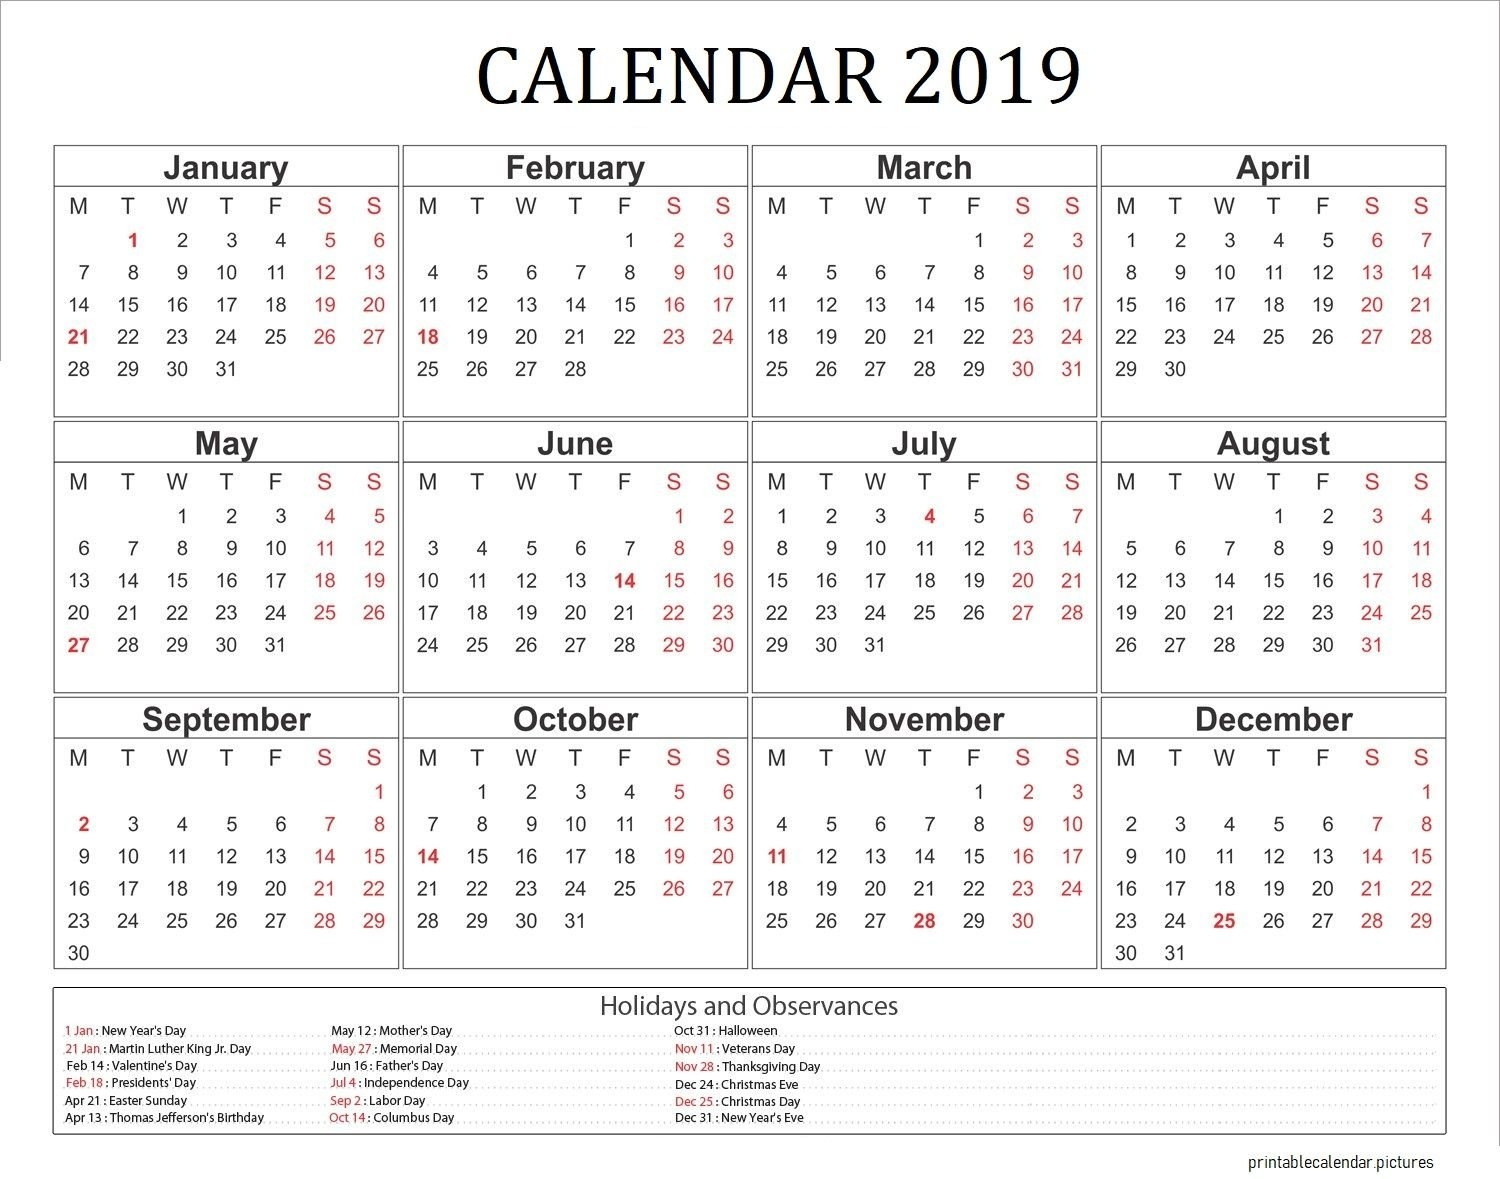 2019 Calendar With Holidays Usa | 2019 Calendar Holidays | Pinterest Calendar 2019 Usa